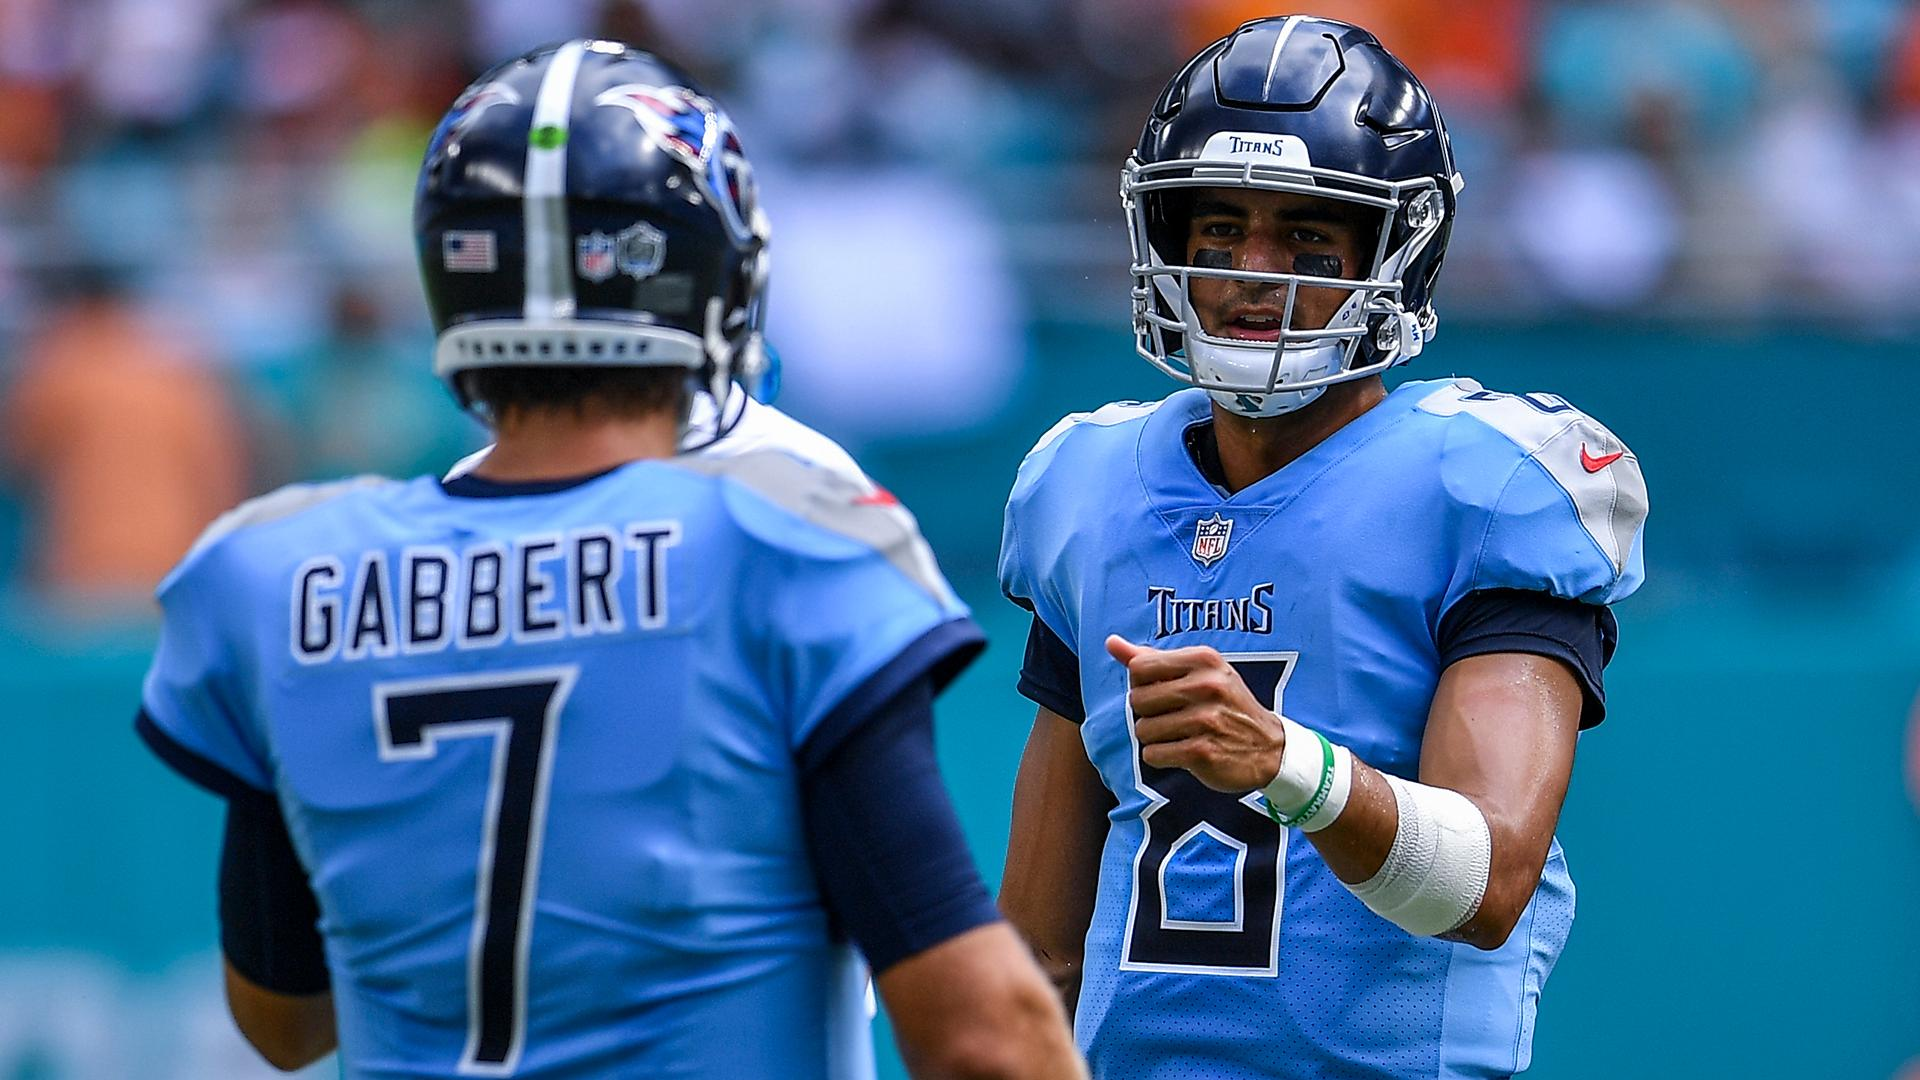 Titans QB Marcus Mariota takes a step in the 'right direction.' https://t.co/JDFddo2SiU https://t.co/6lPm3gR9Y1